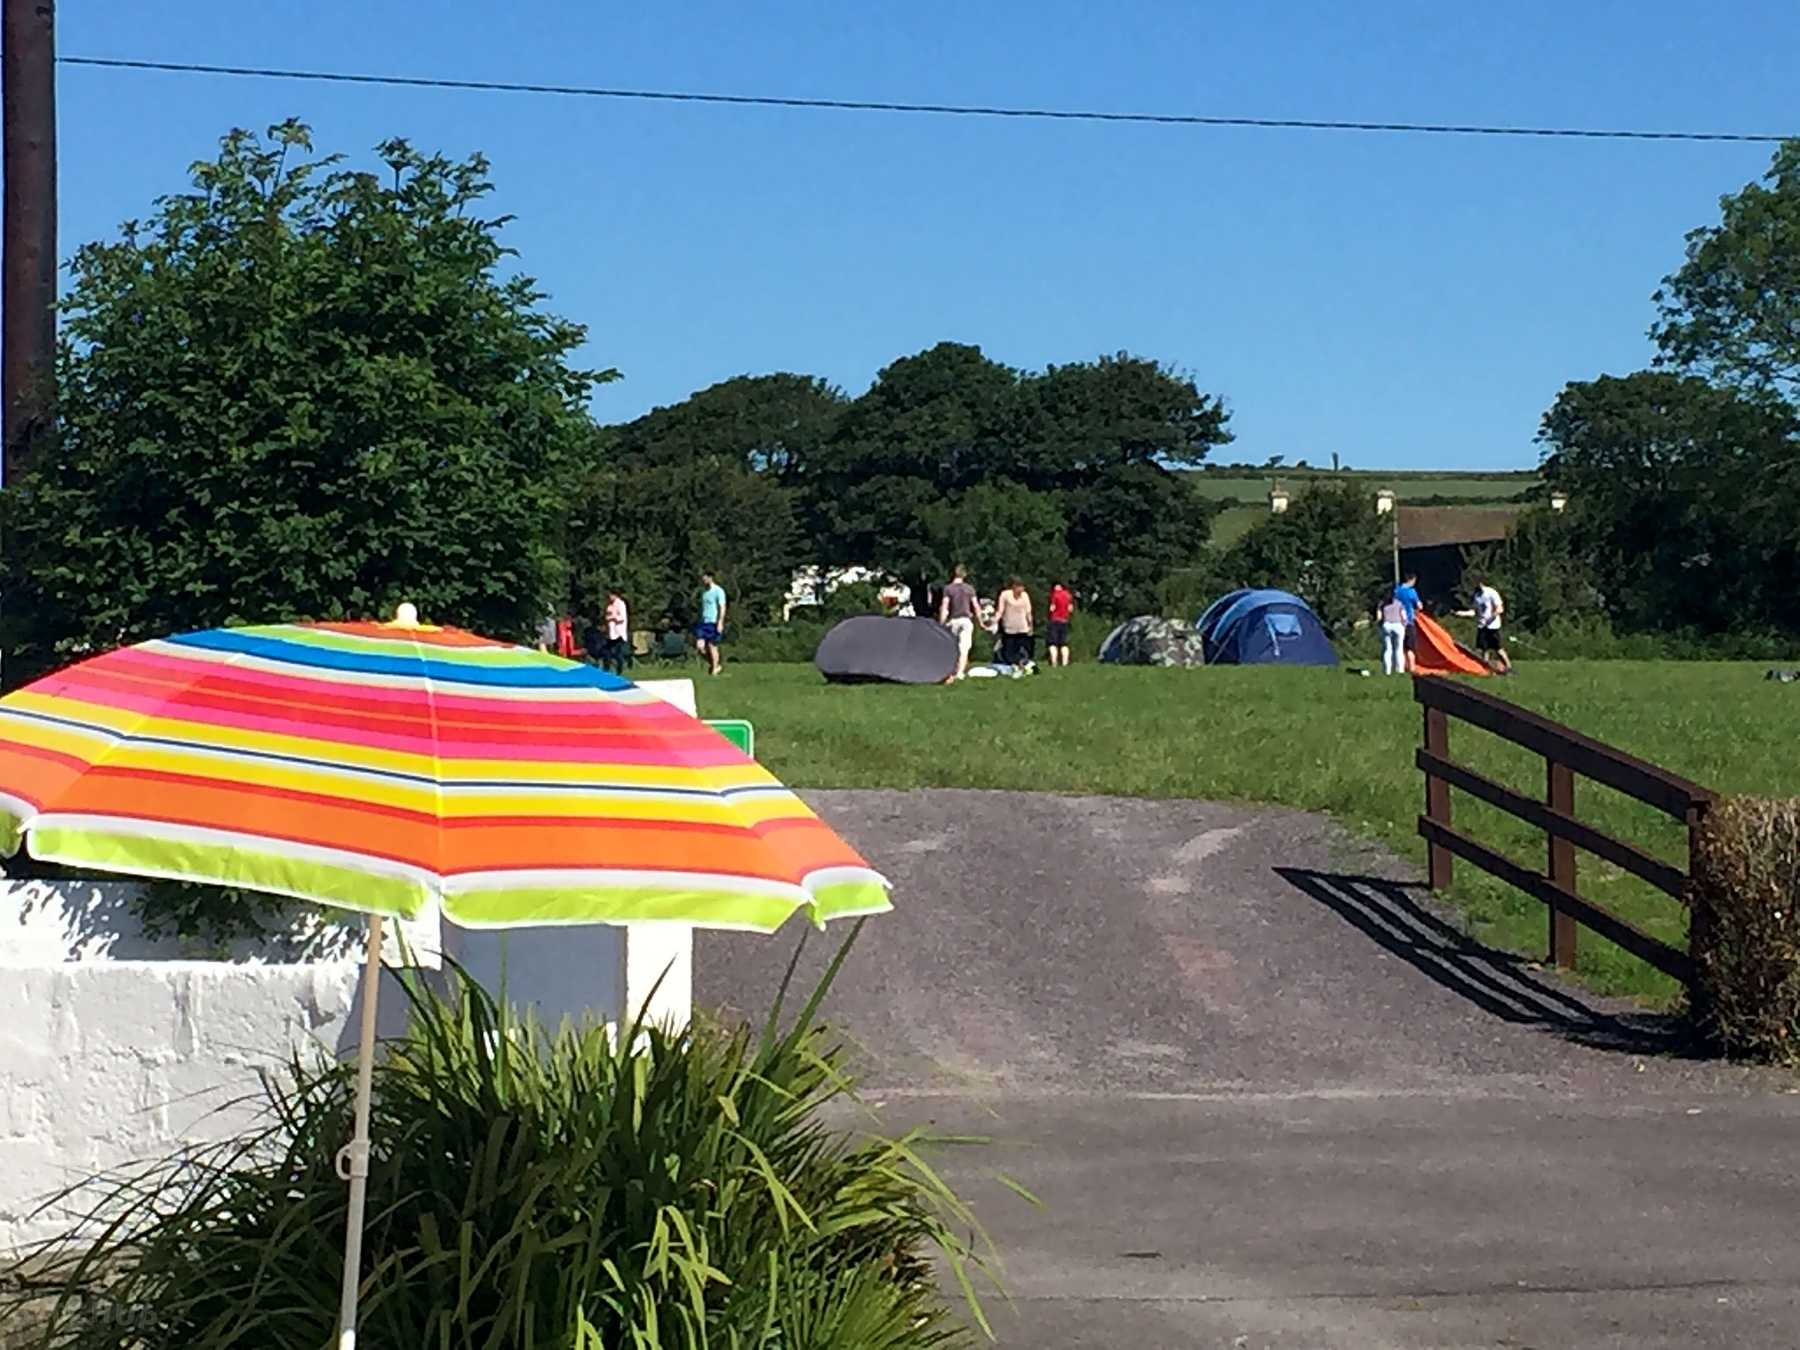 GREEN ACRES CARAVAN & CAMPING PARK - Campground